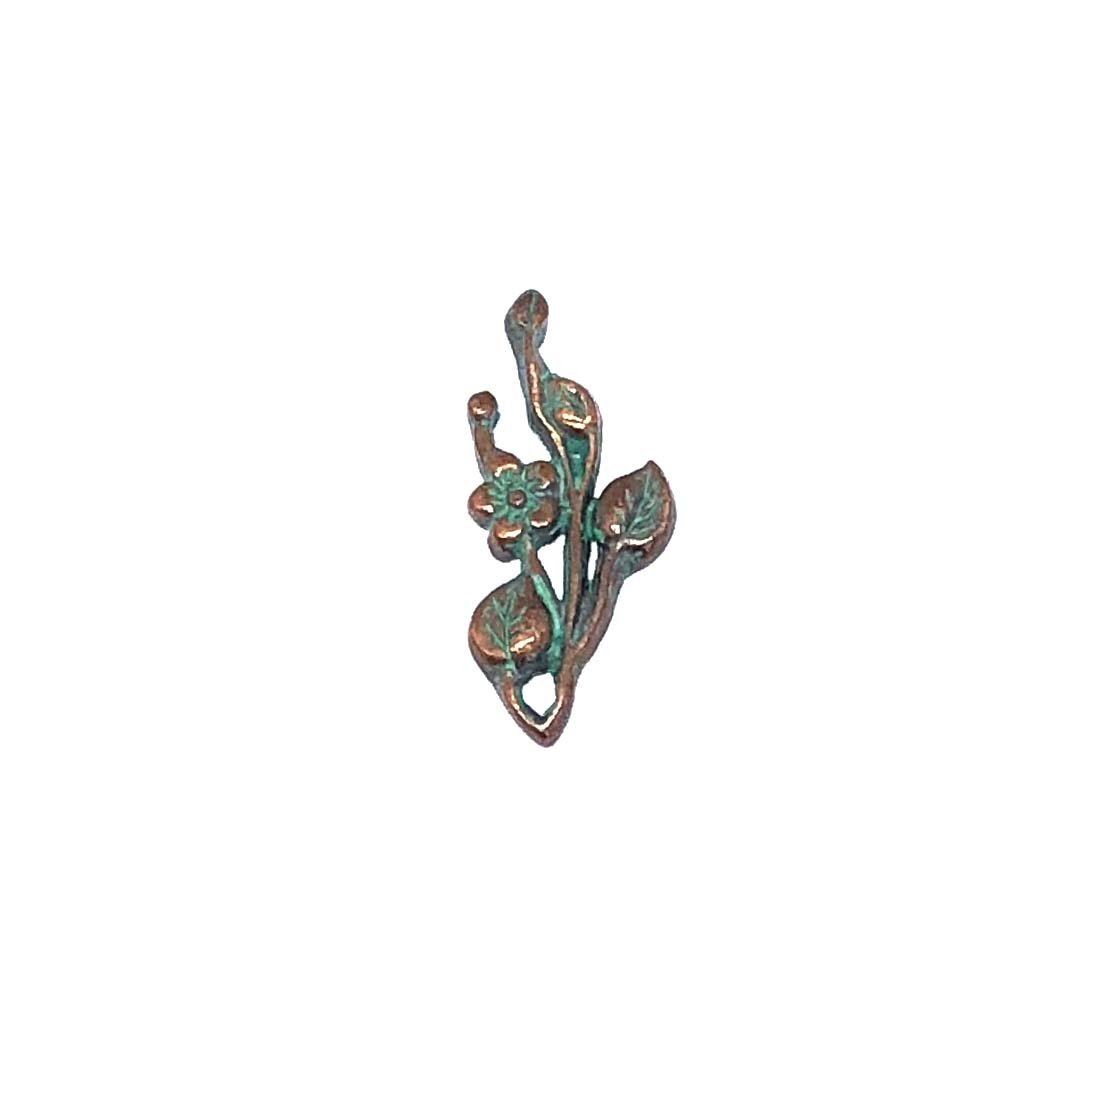 floral leaf sprig, vintage pewter castings, B'sue by 1928, flower, leaf, charm, pendant, floral, nickel free, lead free pewter, weathered copper, us made, mint green patina, vintage jewelry supplies, 1928 Jewelry, B'sue Boutiques, vintage style, 0333